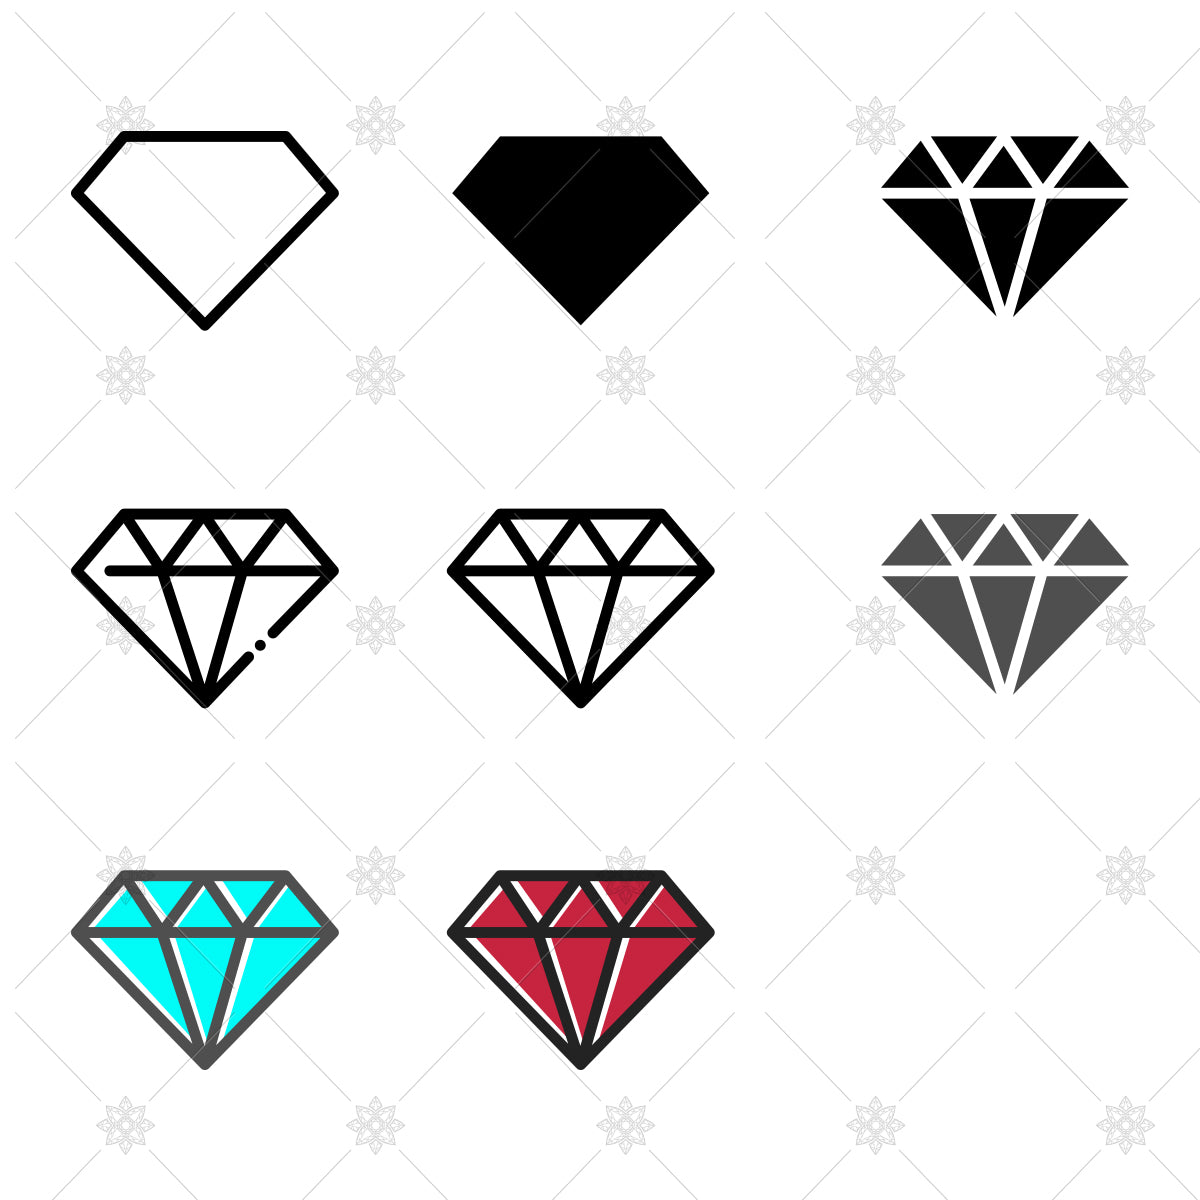 diamond vector icons for websites and apps